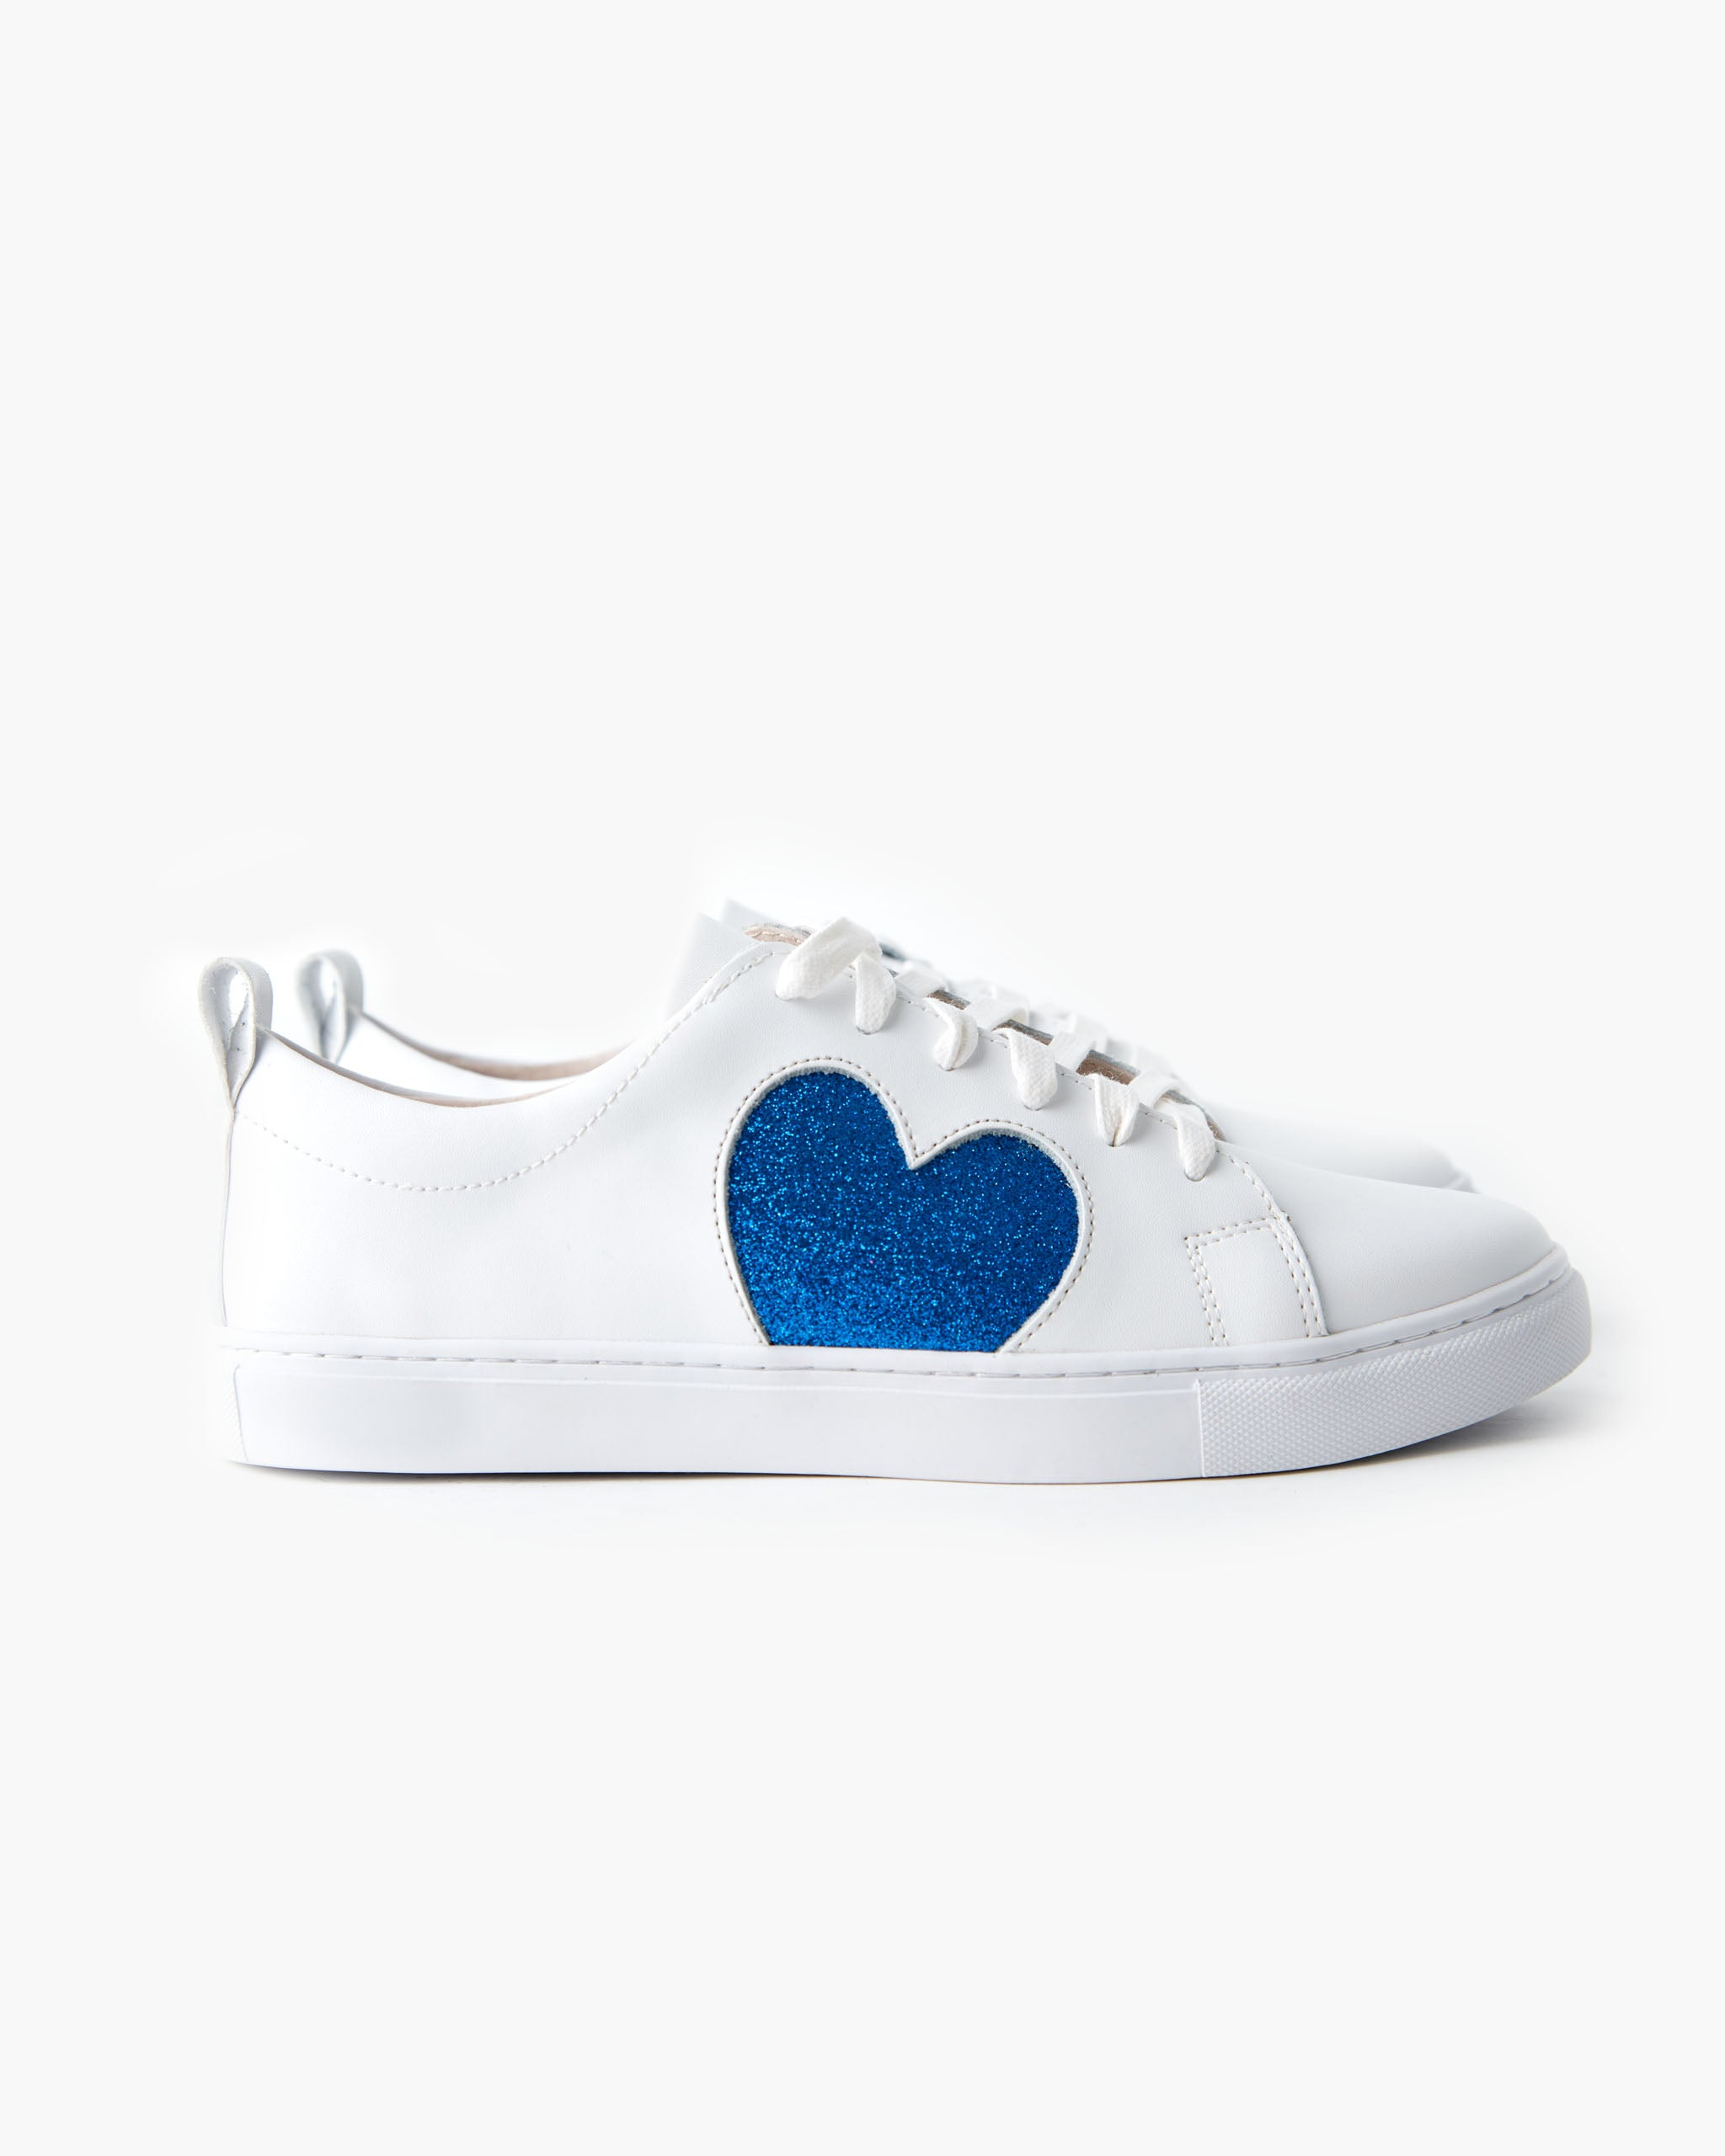 Heart Leather Sneaker - Cobalt Glitter